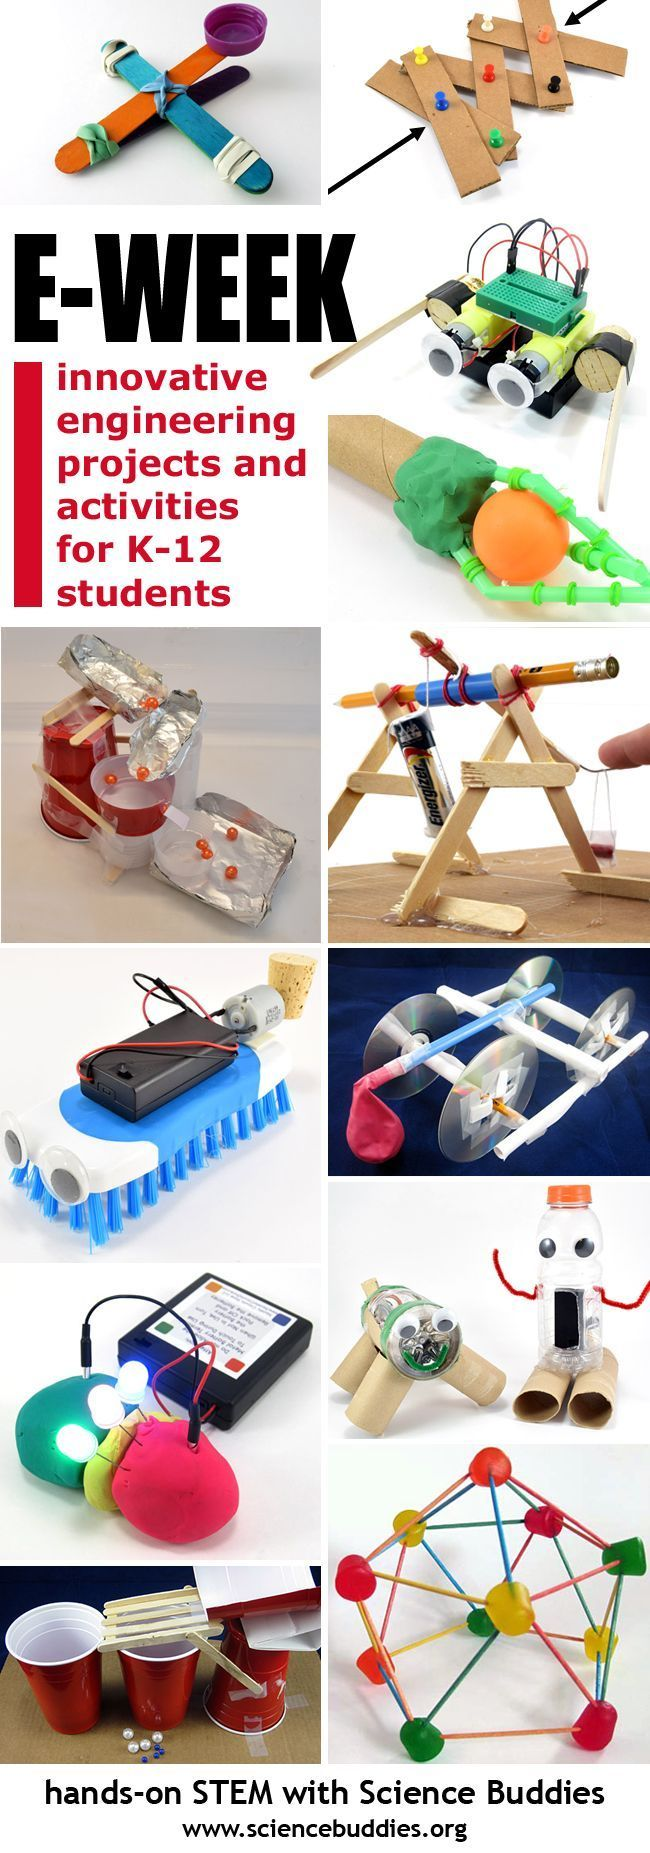 Hosting an Engineering Week at your school? Try these fun activities for students of all ages.